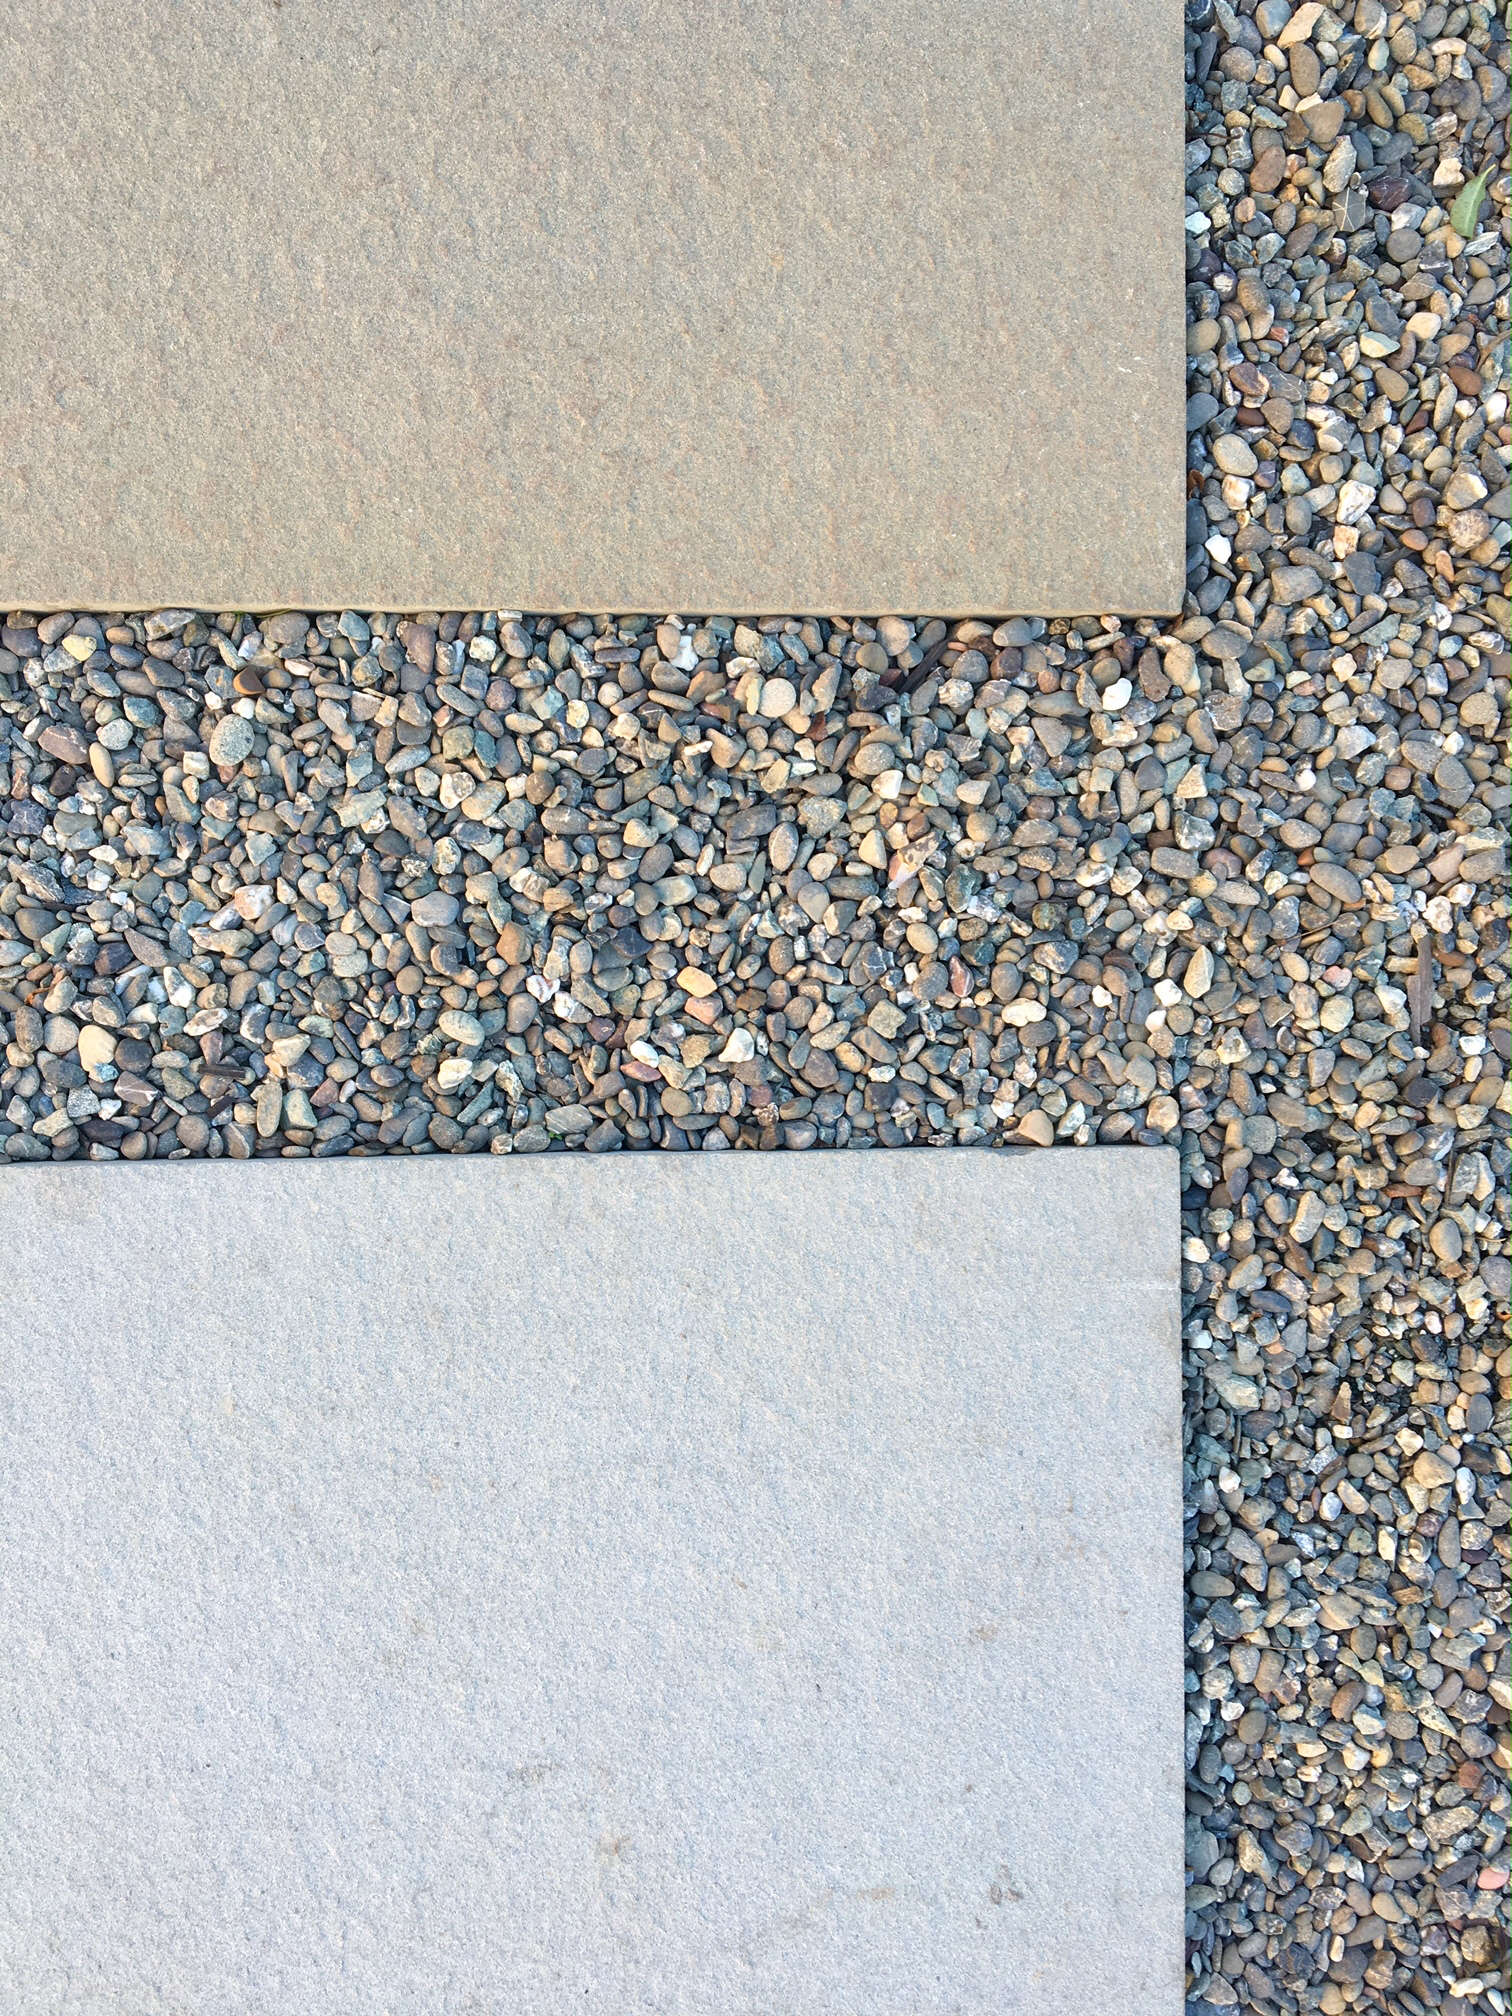 Pea gravel filler is used as a permeable &#8